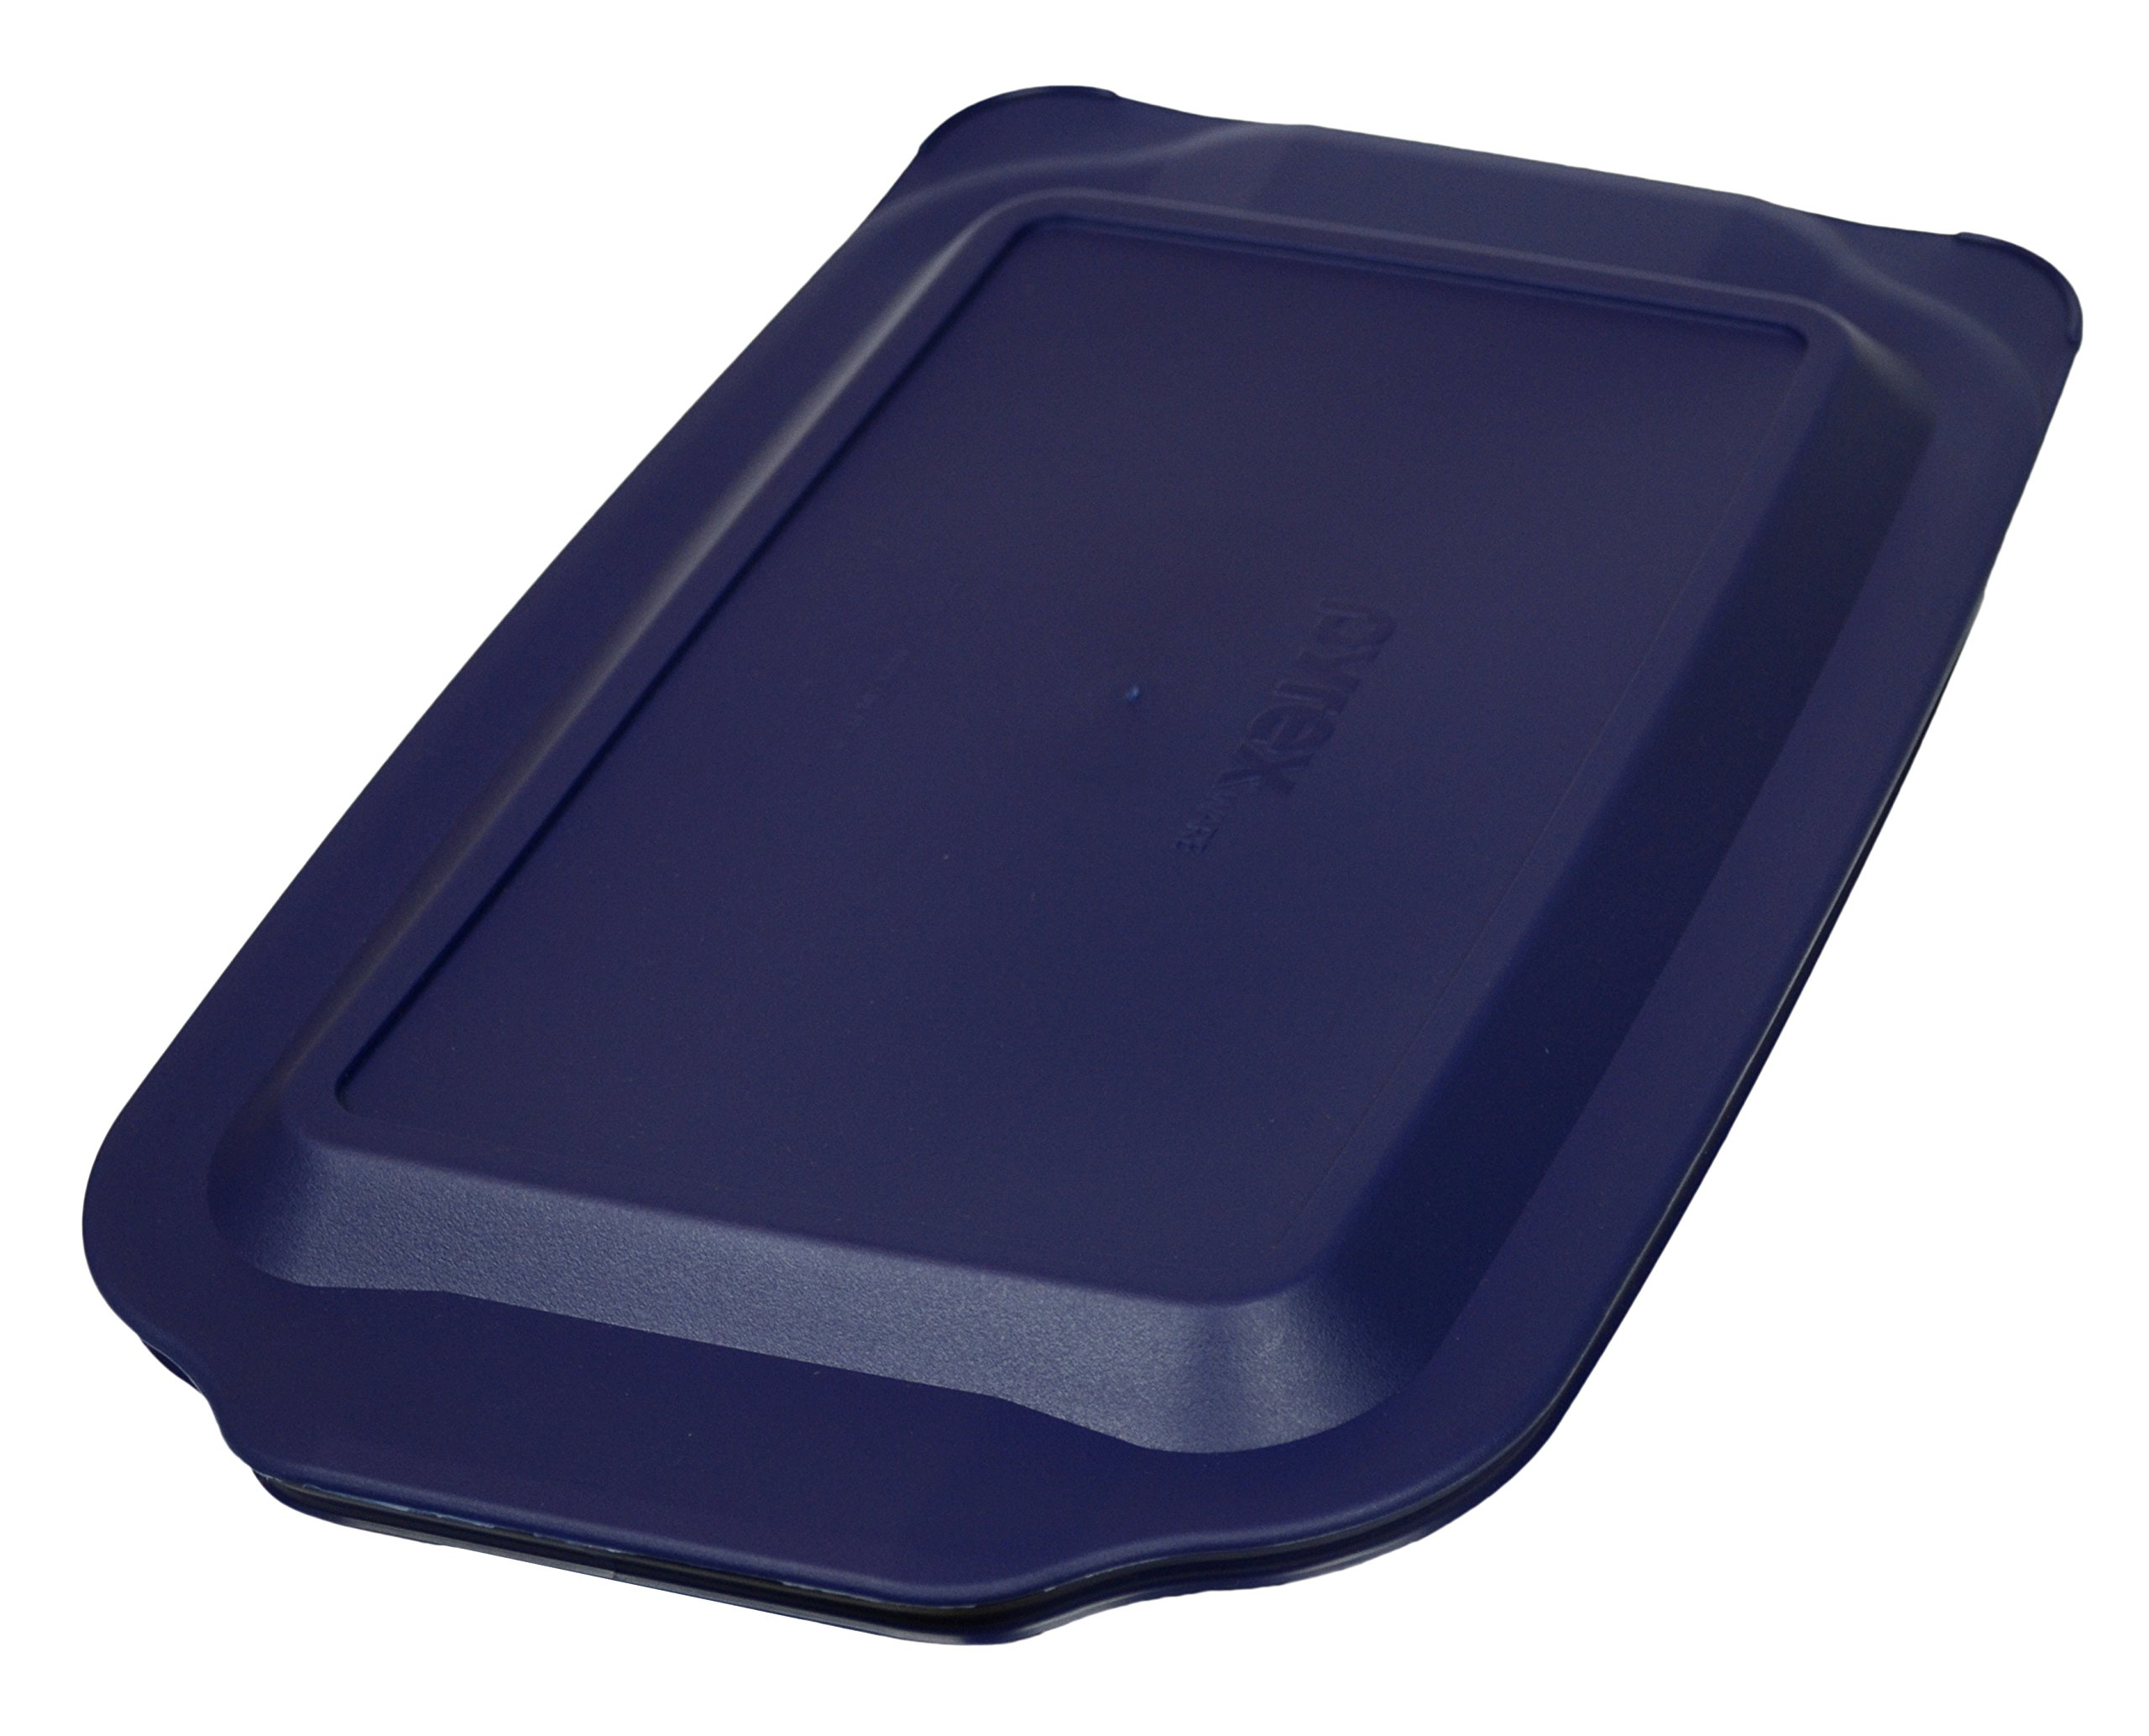 Cheap Pyrex Baking Dish With Lid Find Pyrex Baking Dish With Lid